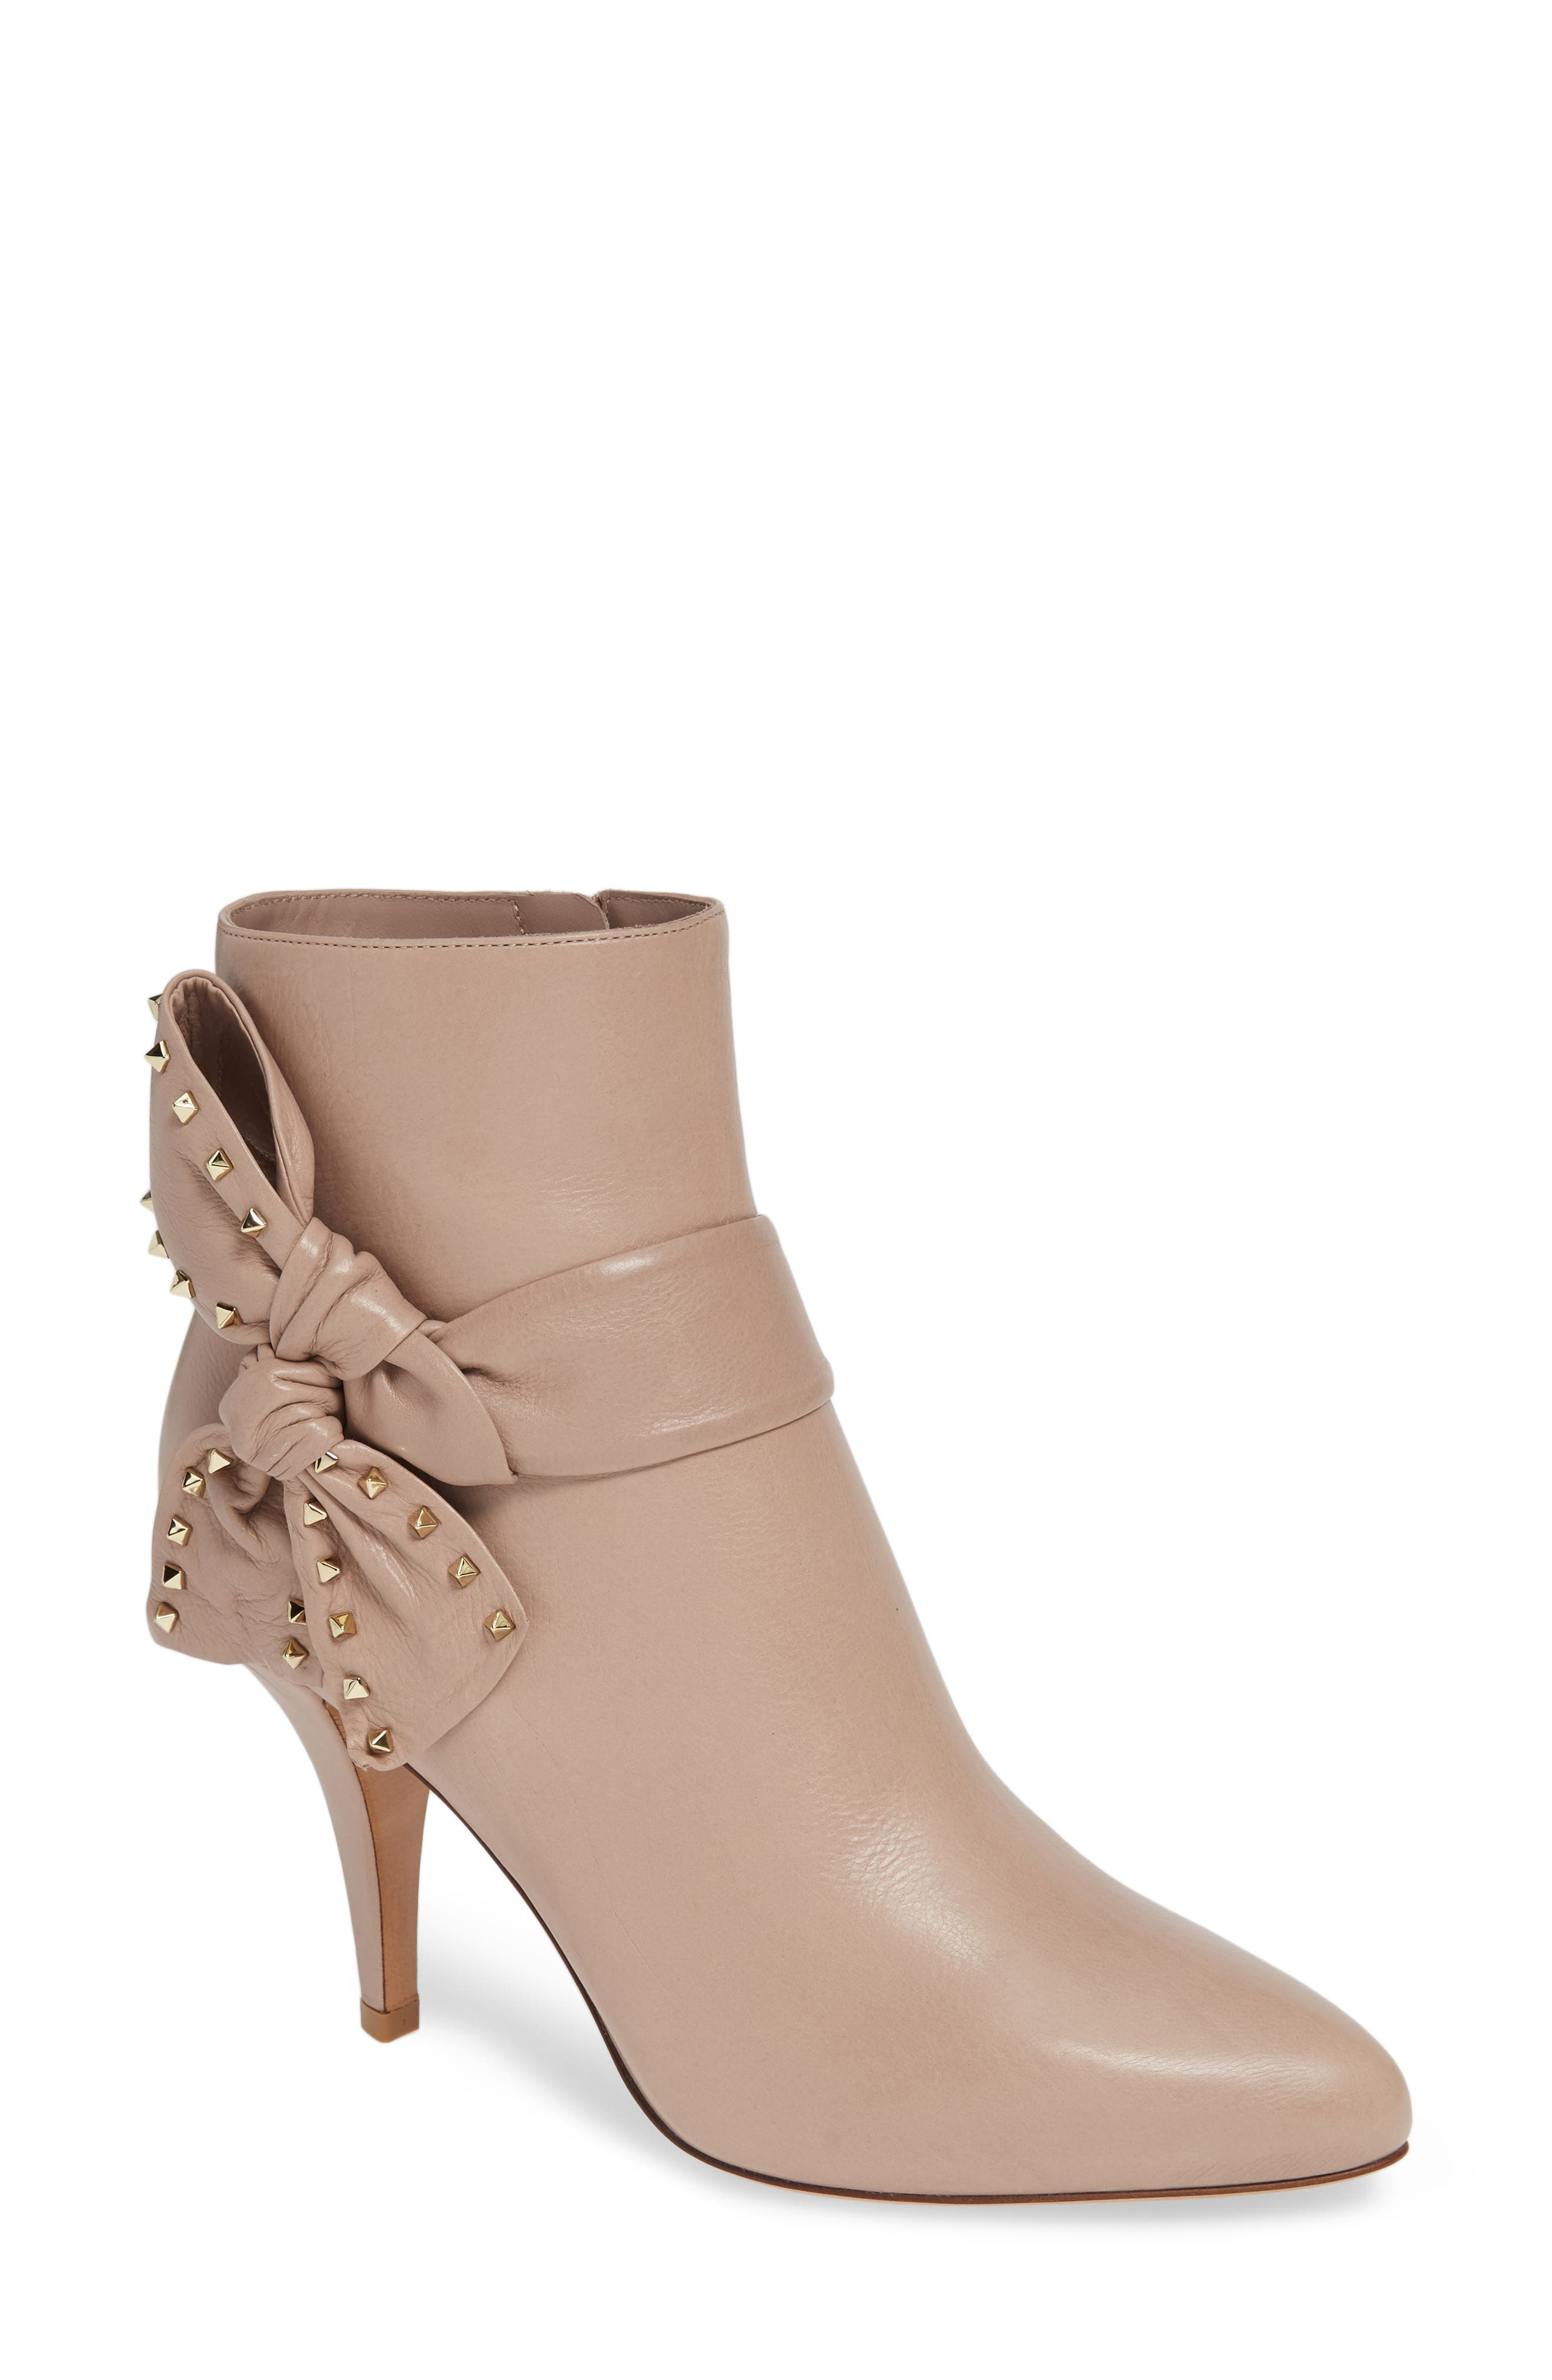 Studded Bow Ankle Bootie,                         Main,                         color, 250